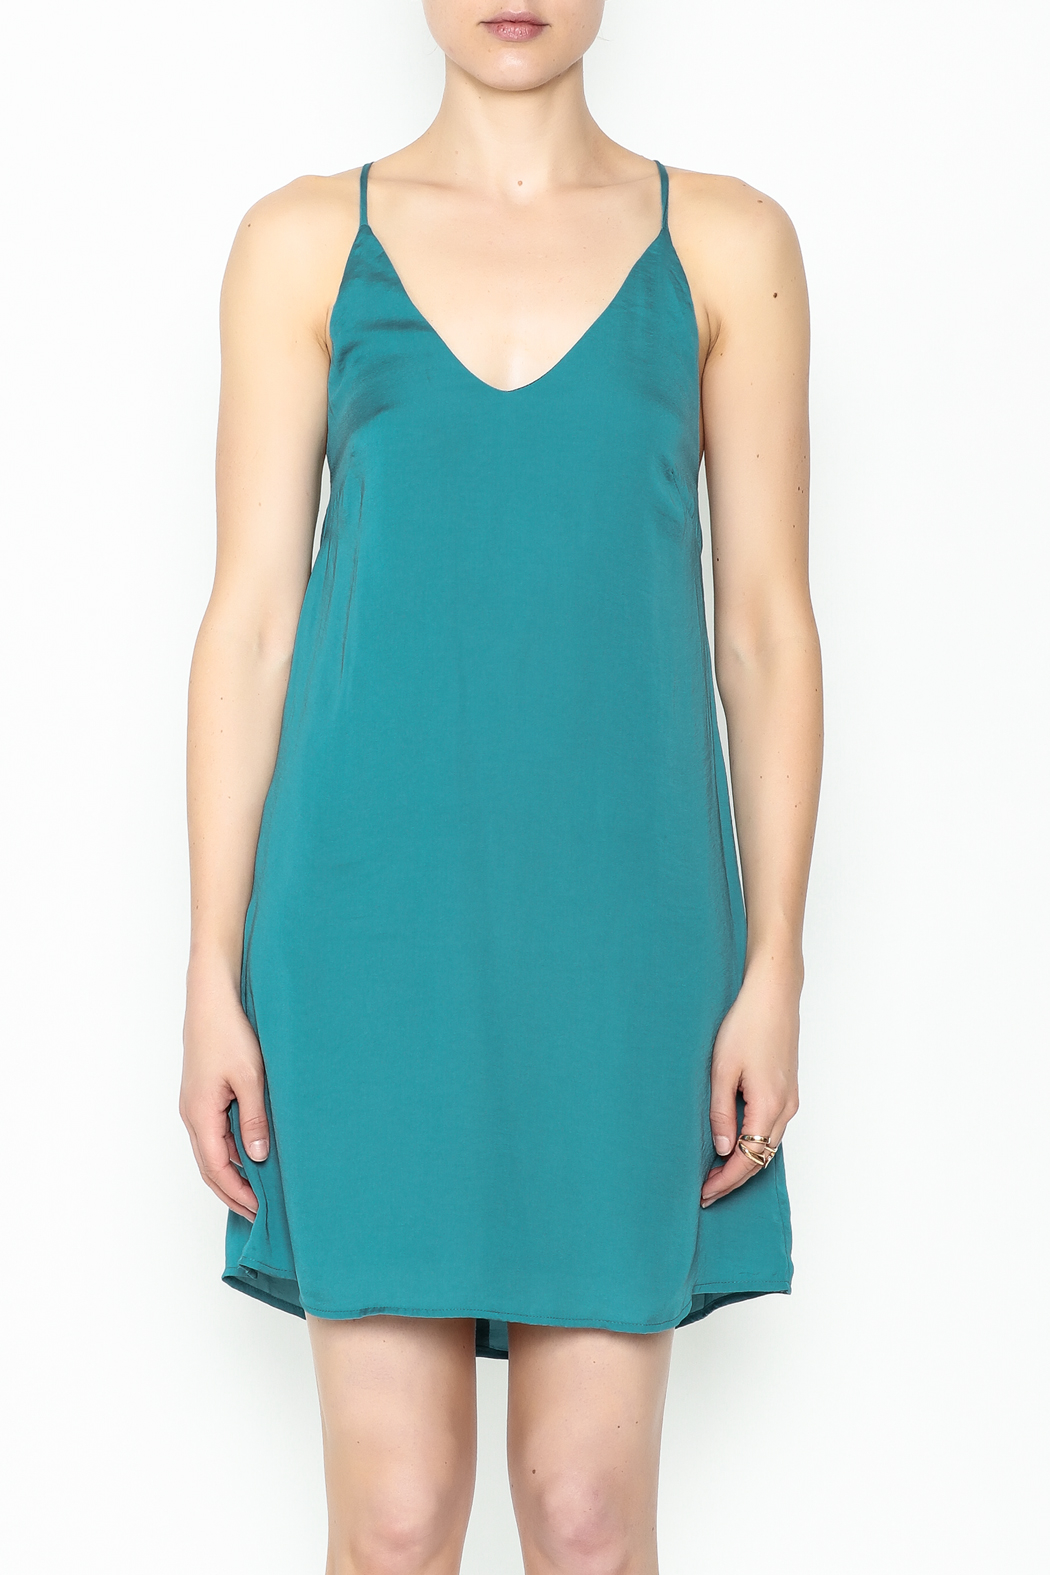 AAKAA Teal Satin Dress - Front Full Image